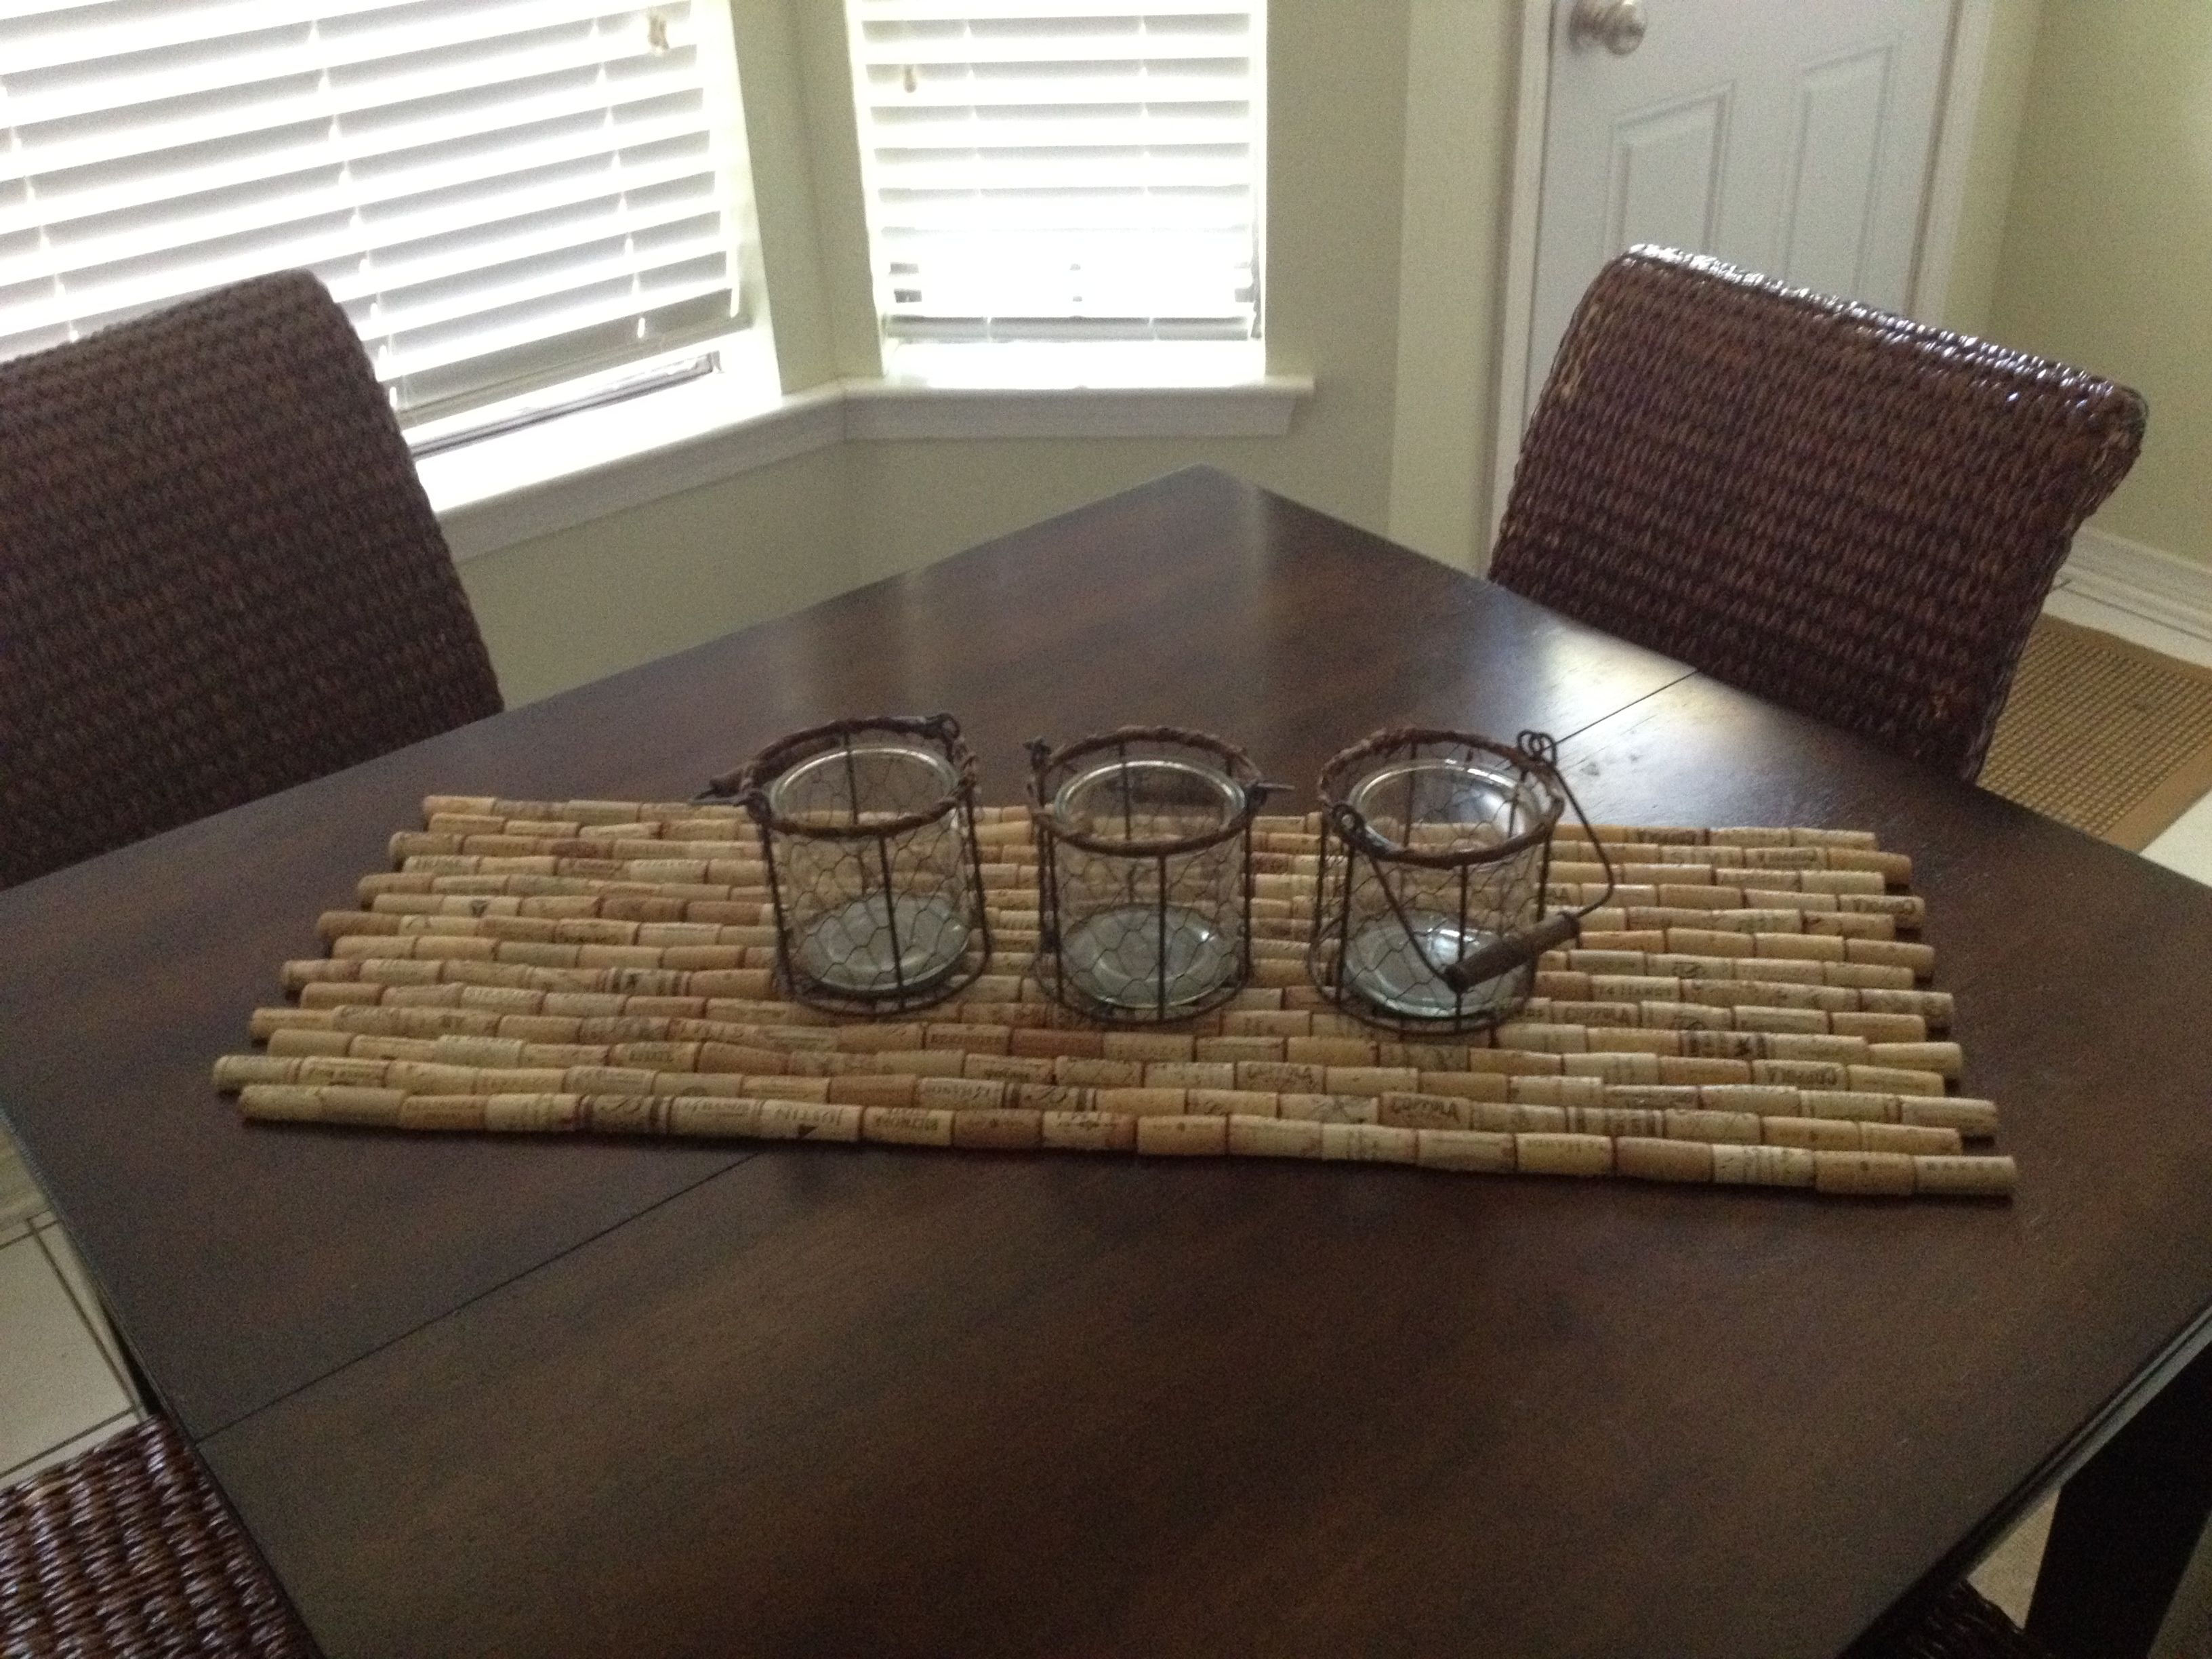 Used wine corks for crafts - Wine Cork Table Runner